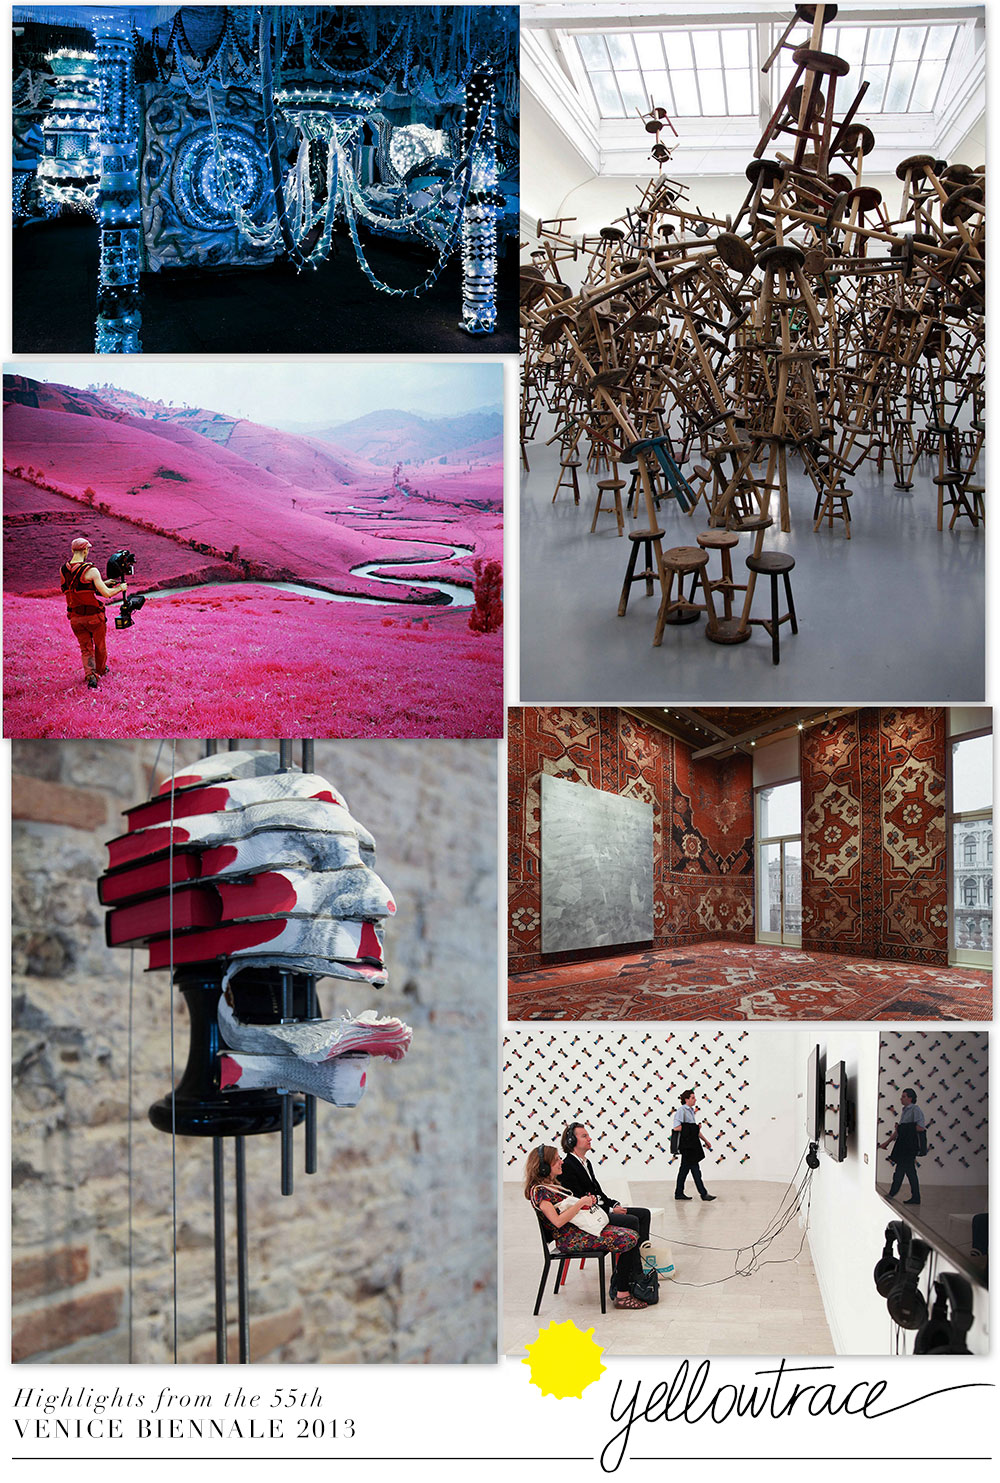 Highlights From The 55th Venice Biennale 2013.